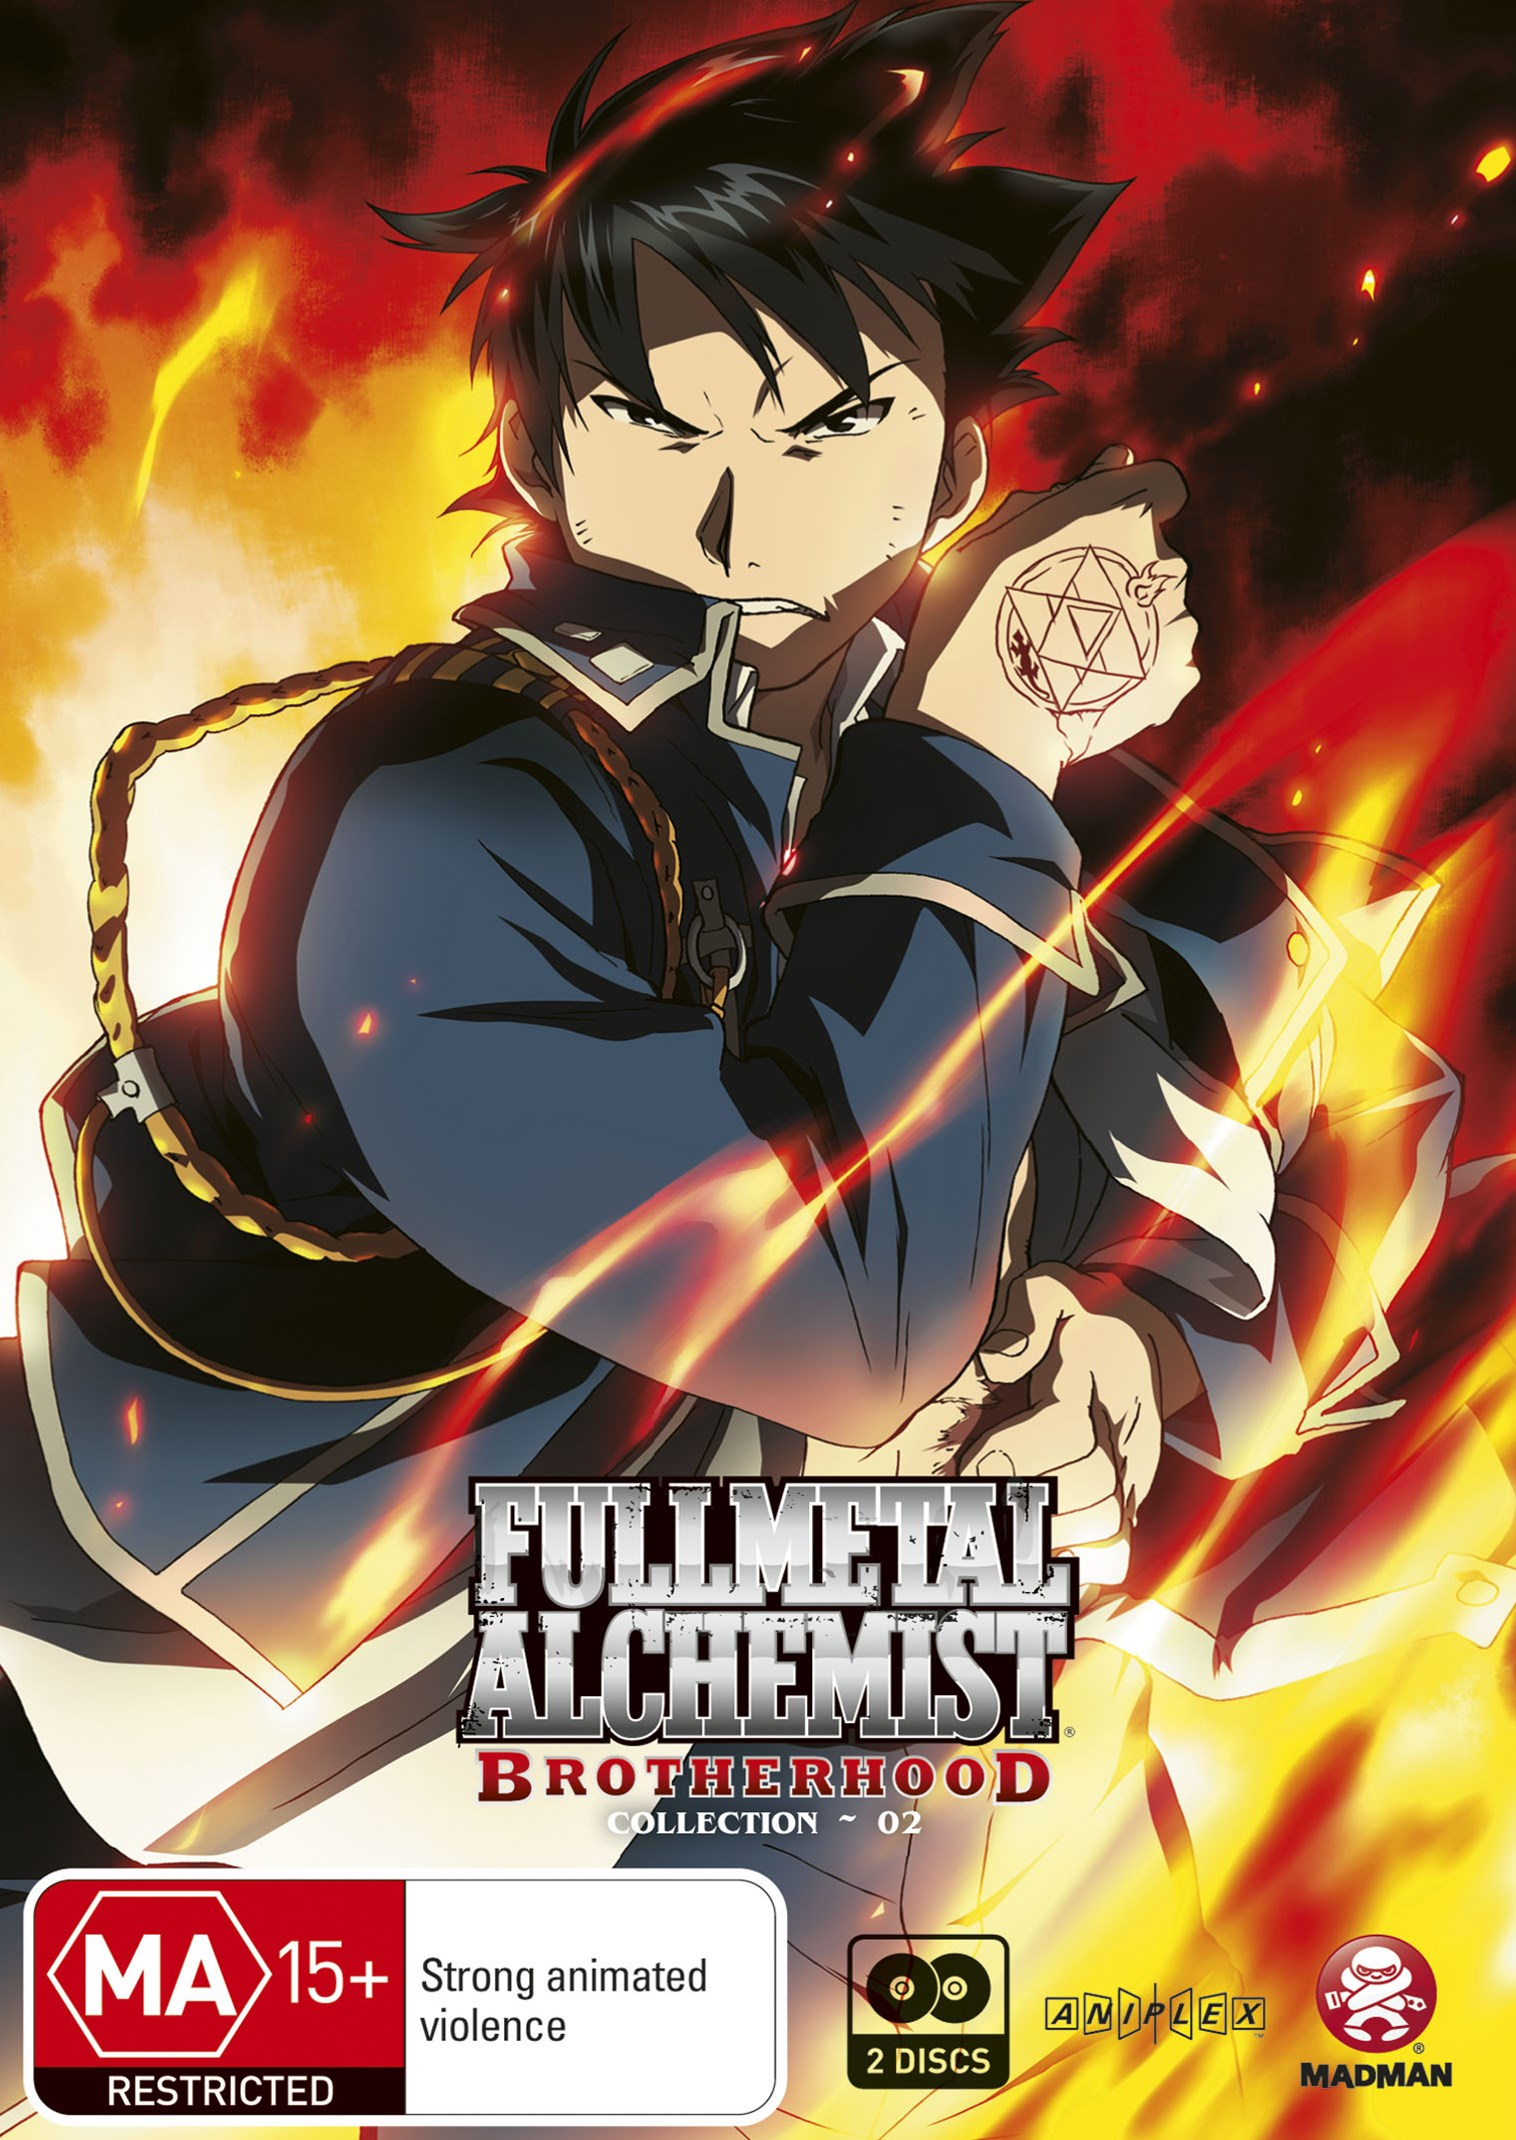 Fullmetal Alchemist: Brotherhood Collection 2